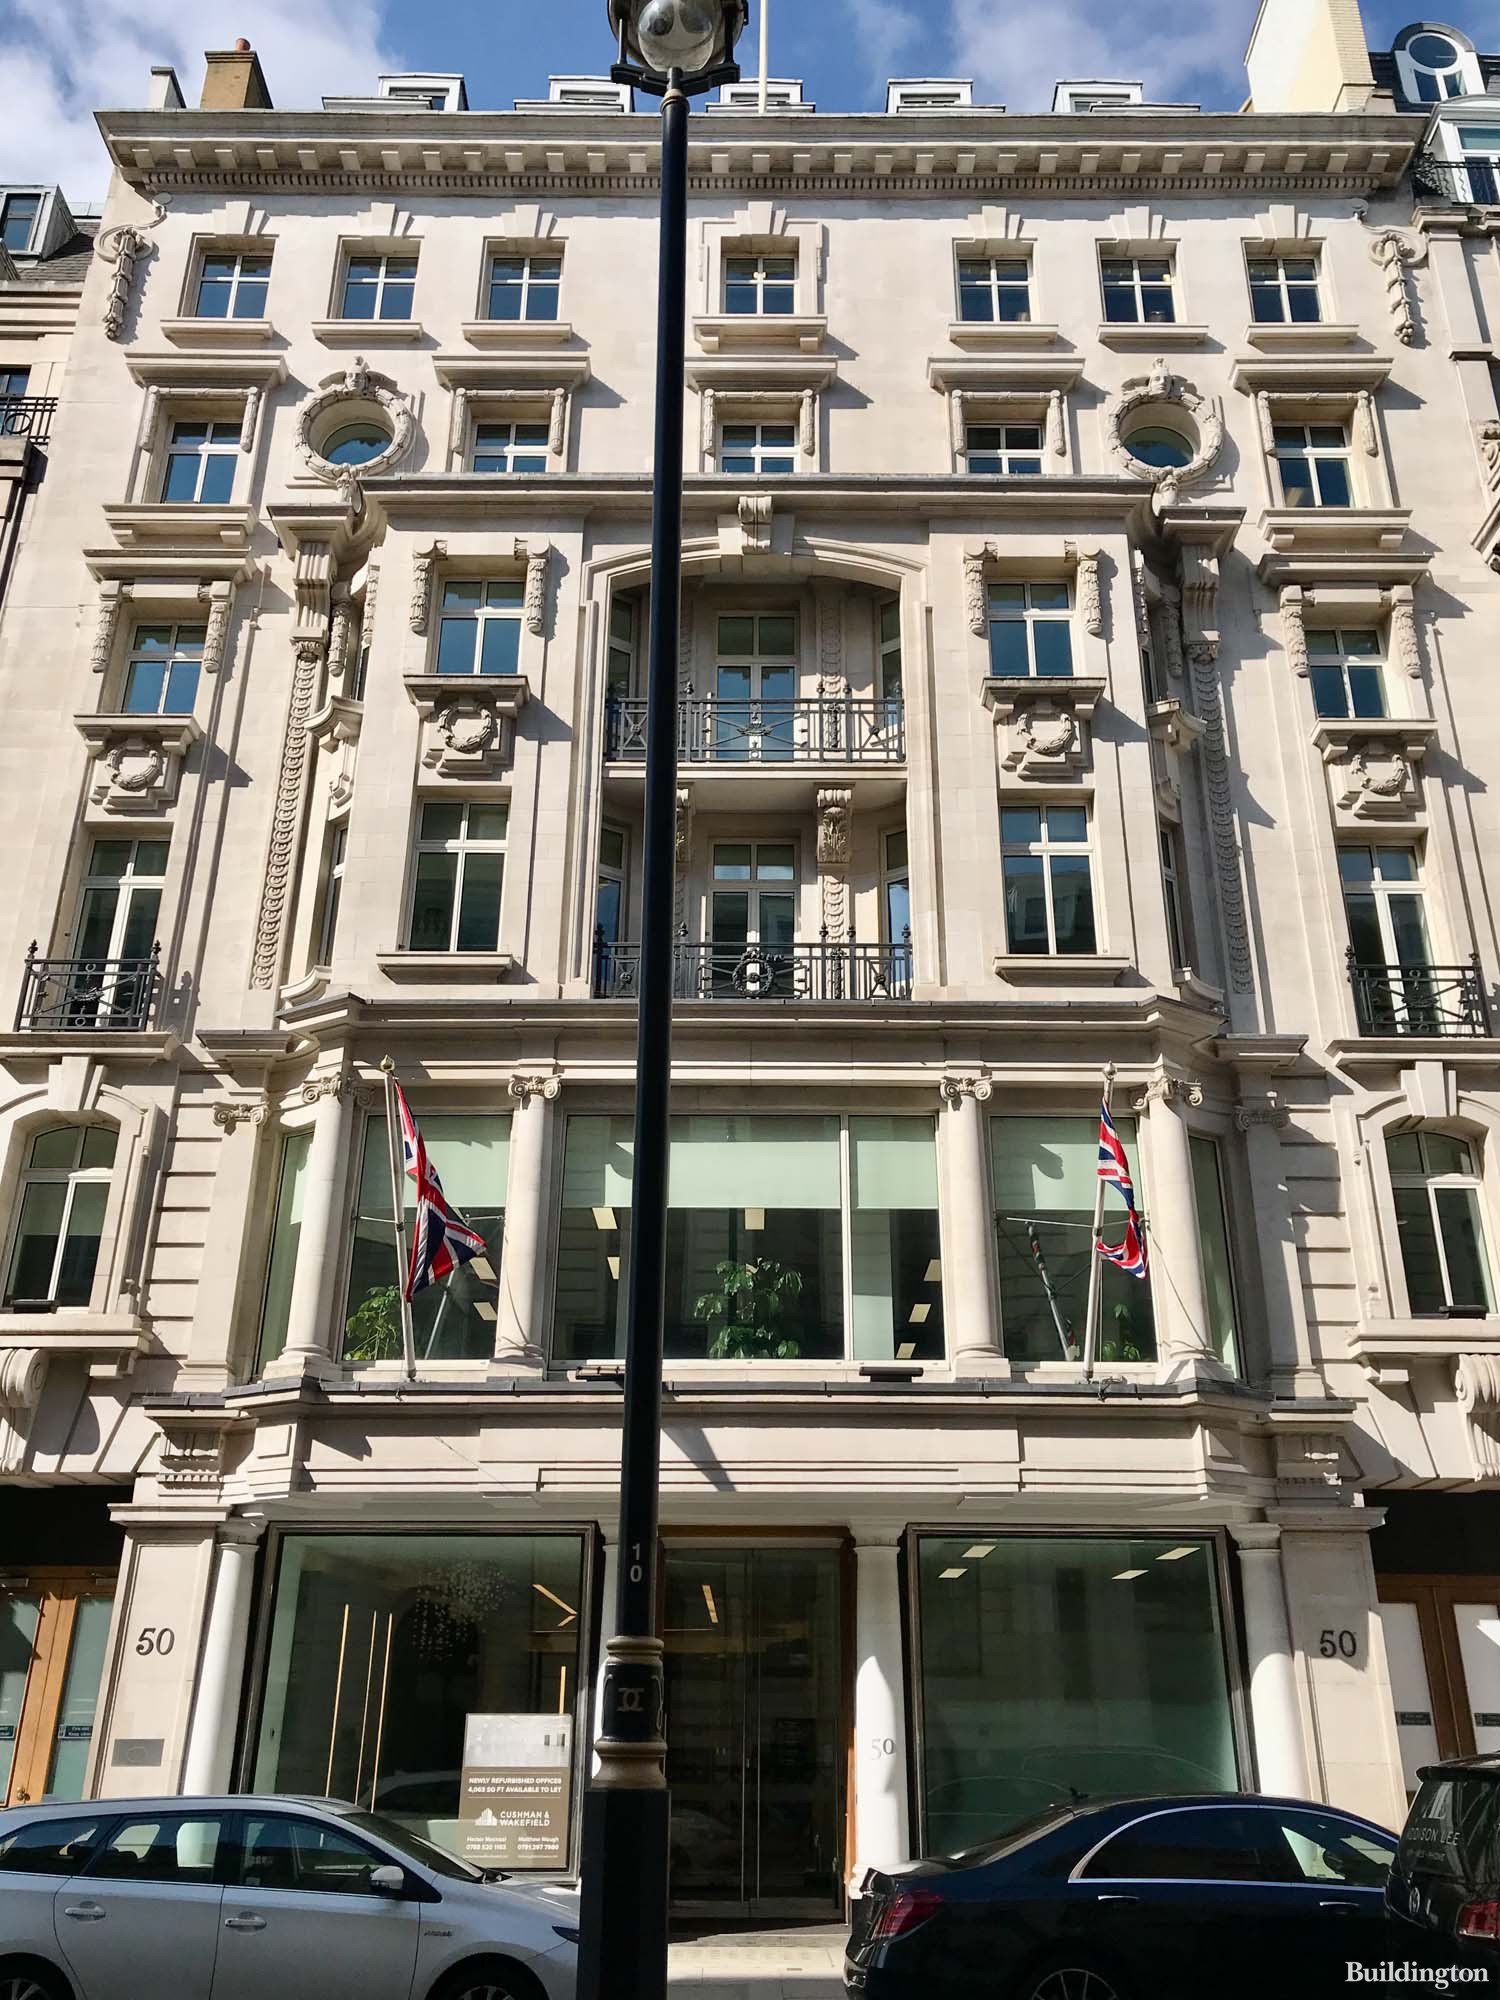 Office windows at 50 Pall Mall building in St James's, London SW1.